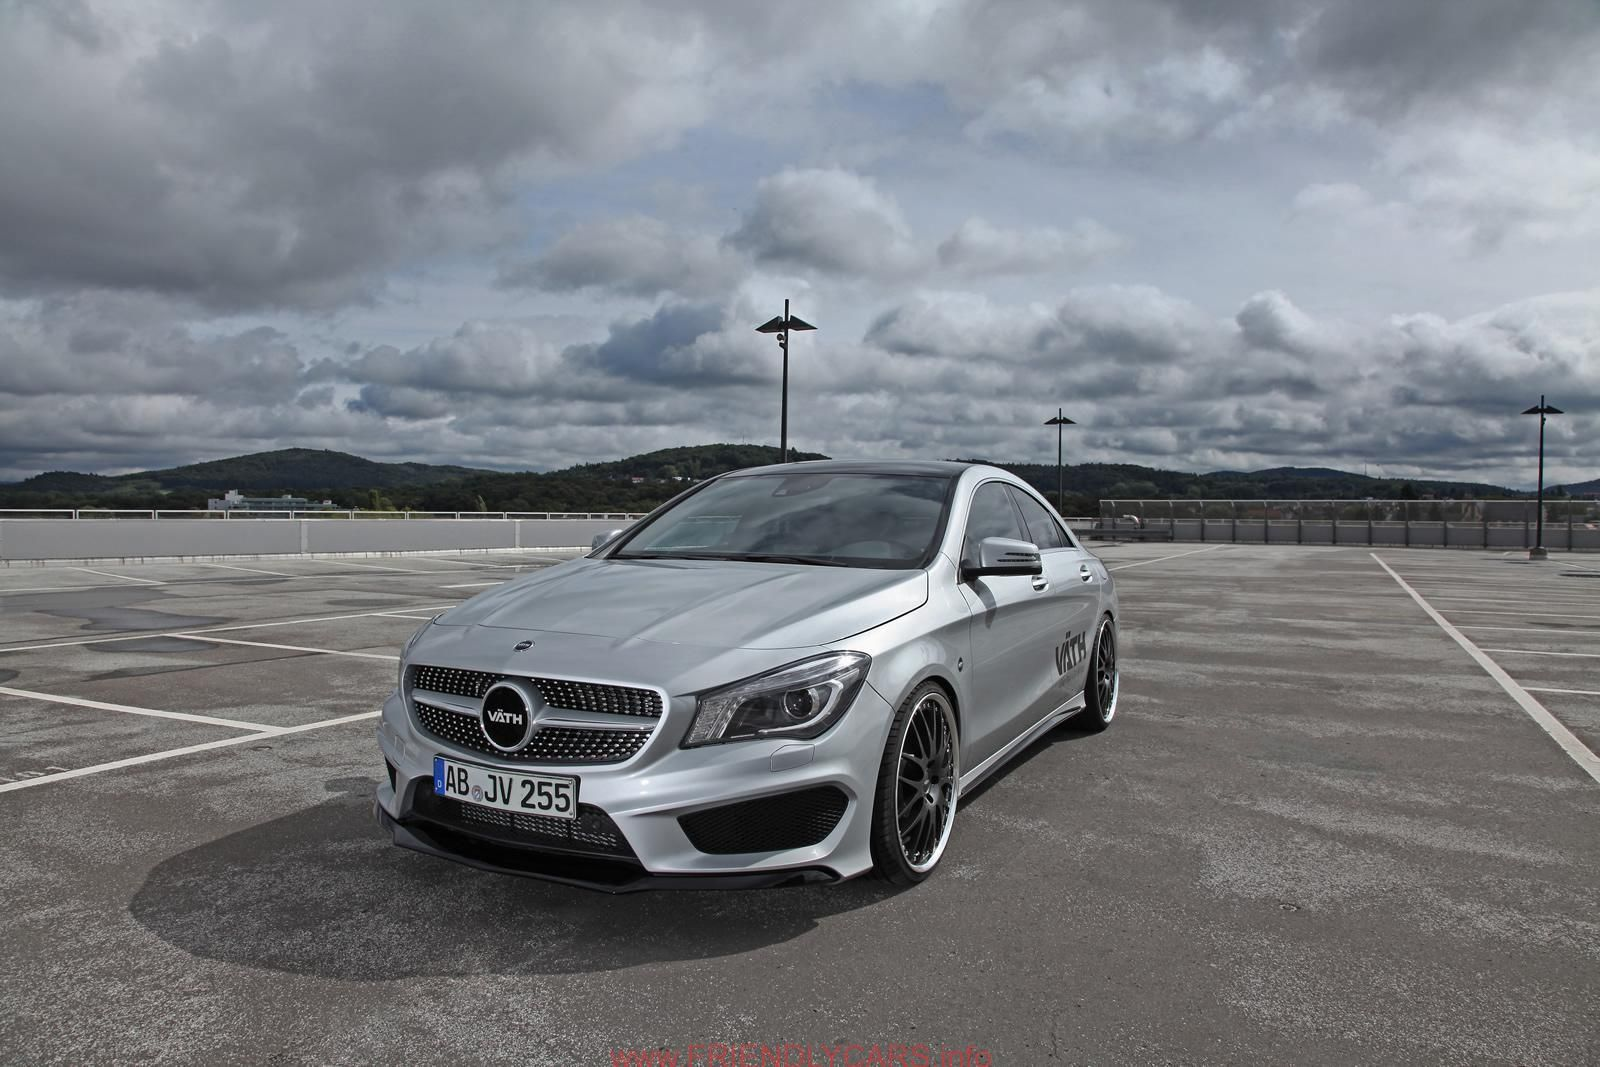 cool mercedes benz cla 250 wallpaper car images hd Mercedes Benz 1600x1067